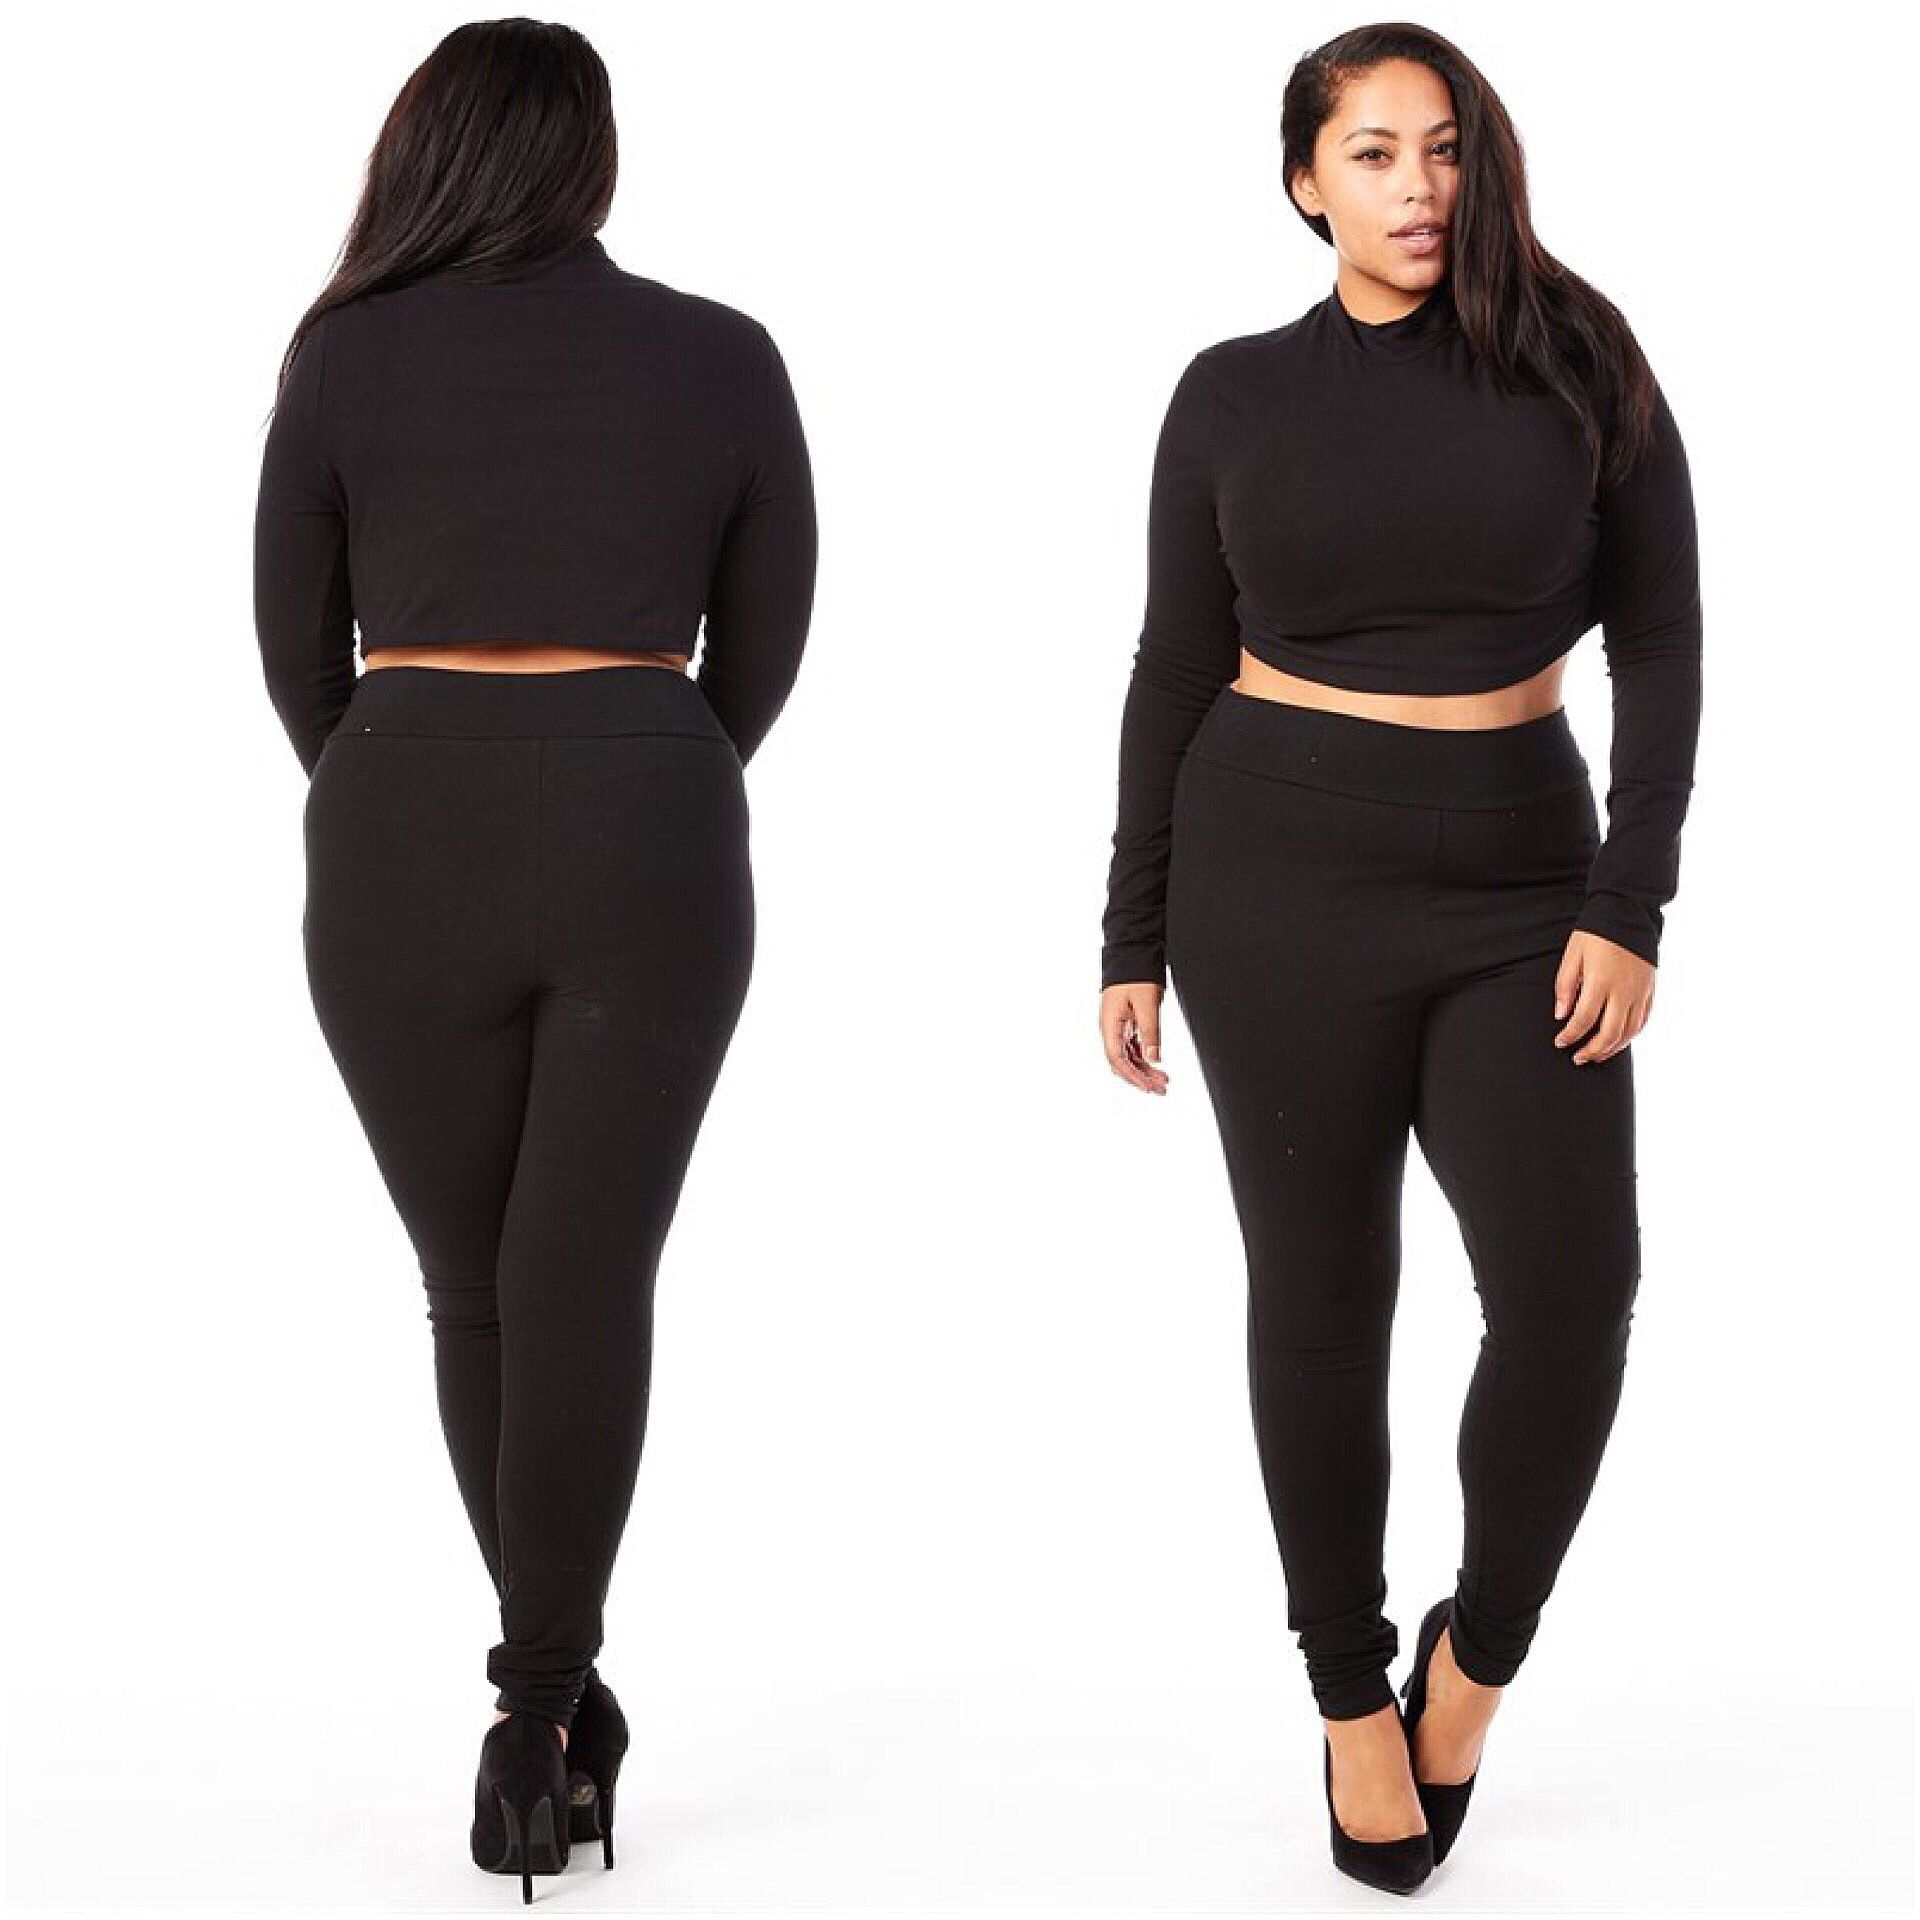 2 Piece Mock Neck Crop Top High Waisted Legging Set | Tops ...